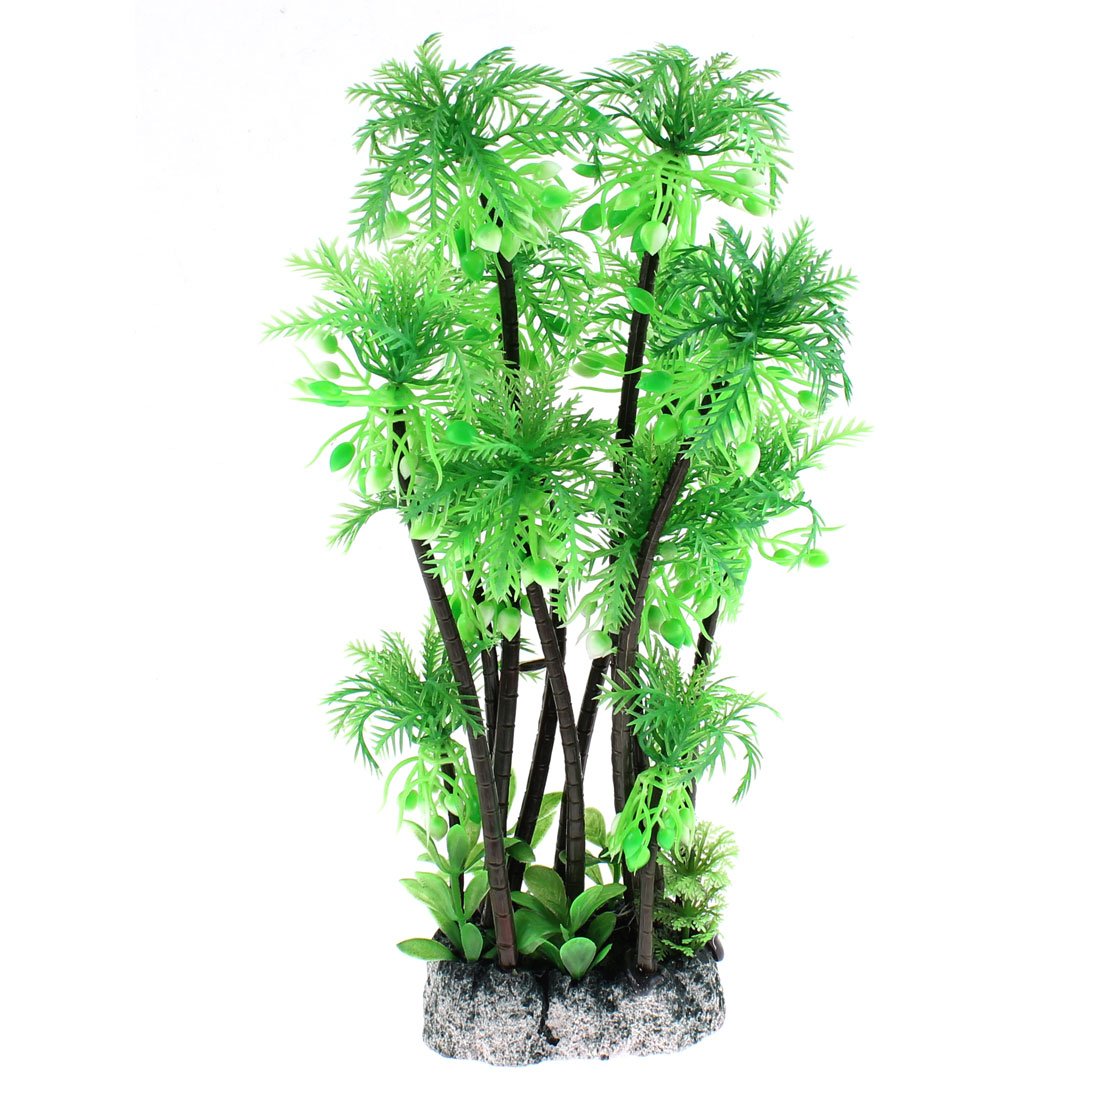 Aquarium Plastic Manmade Coconut Tree Plant Decoration 28cm Height